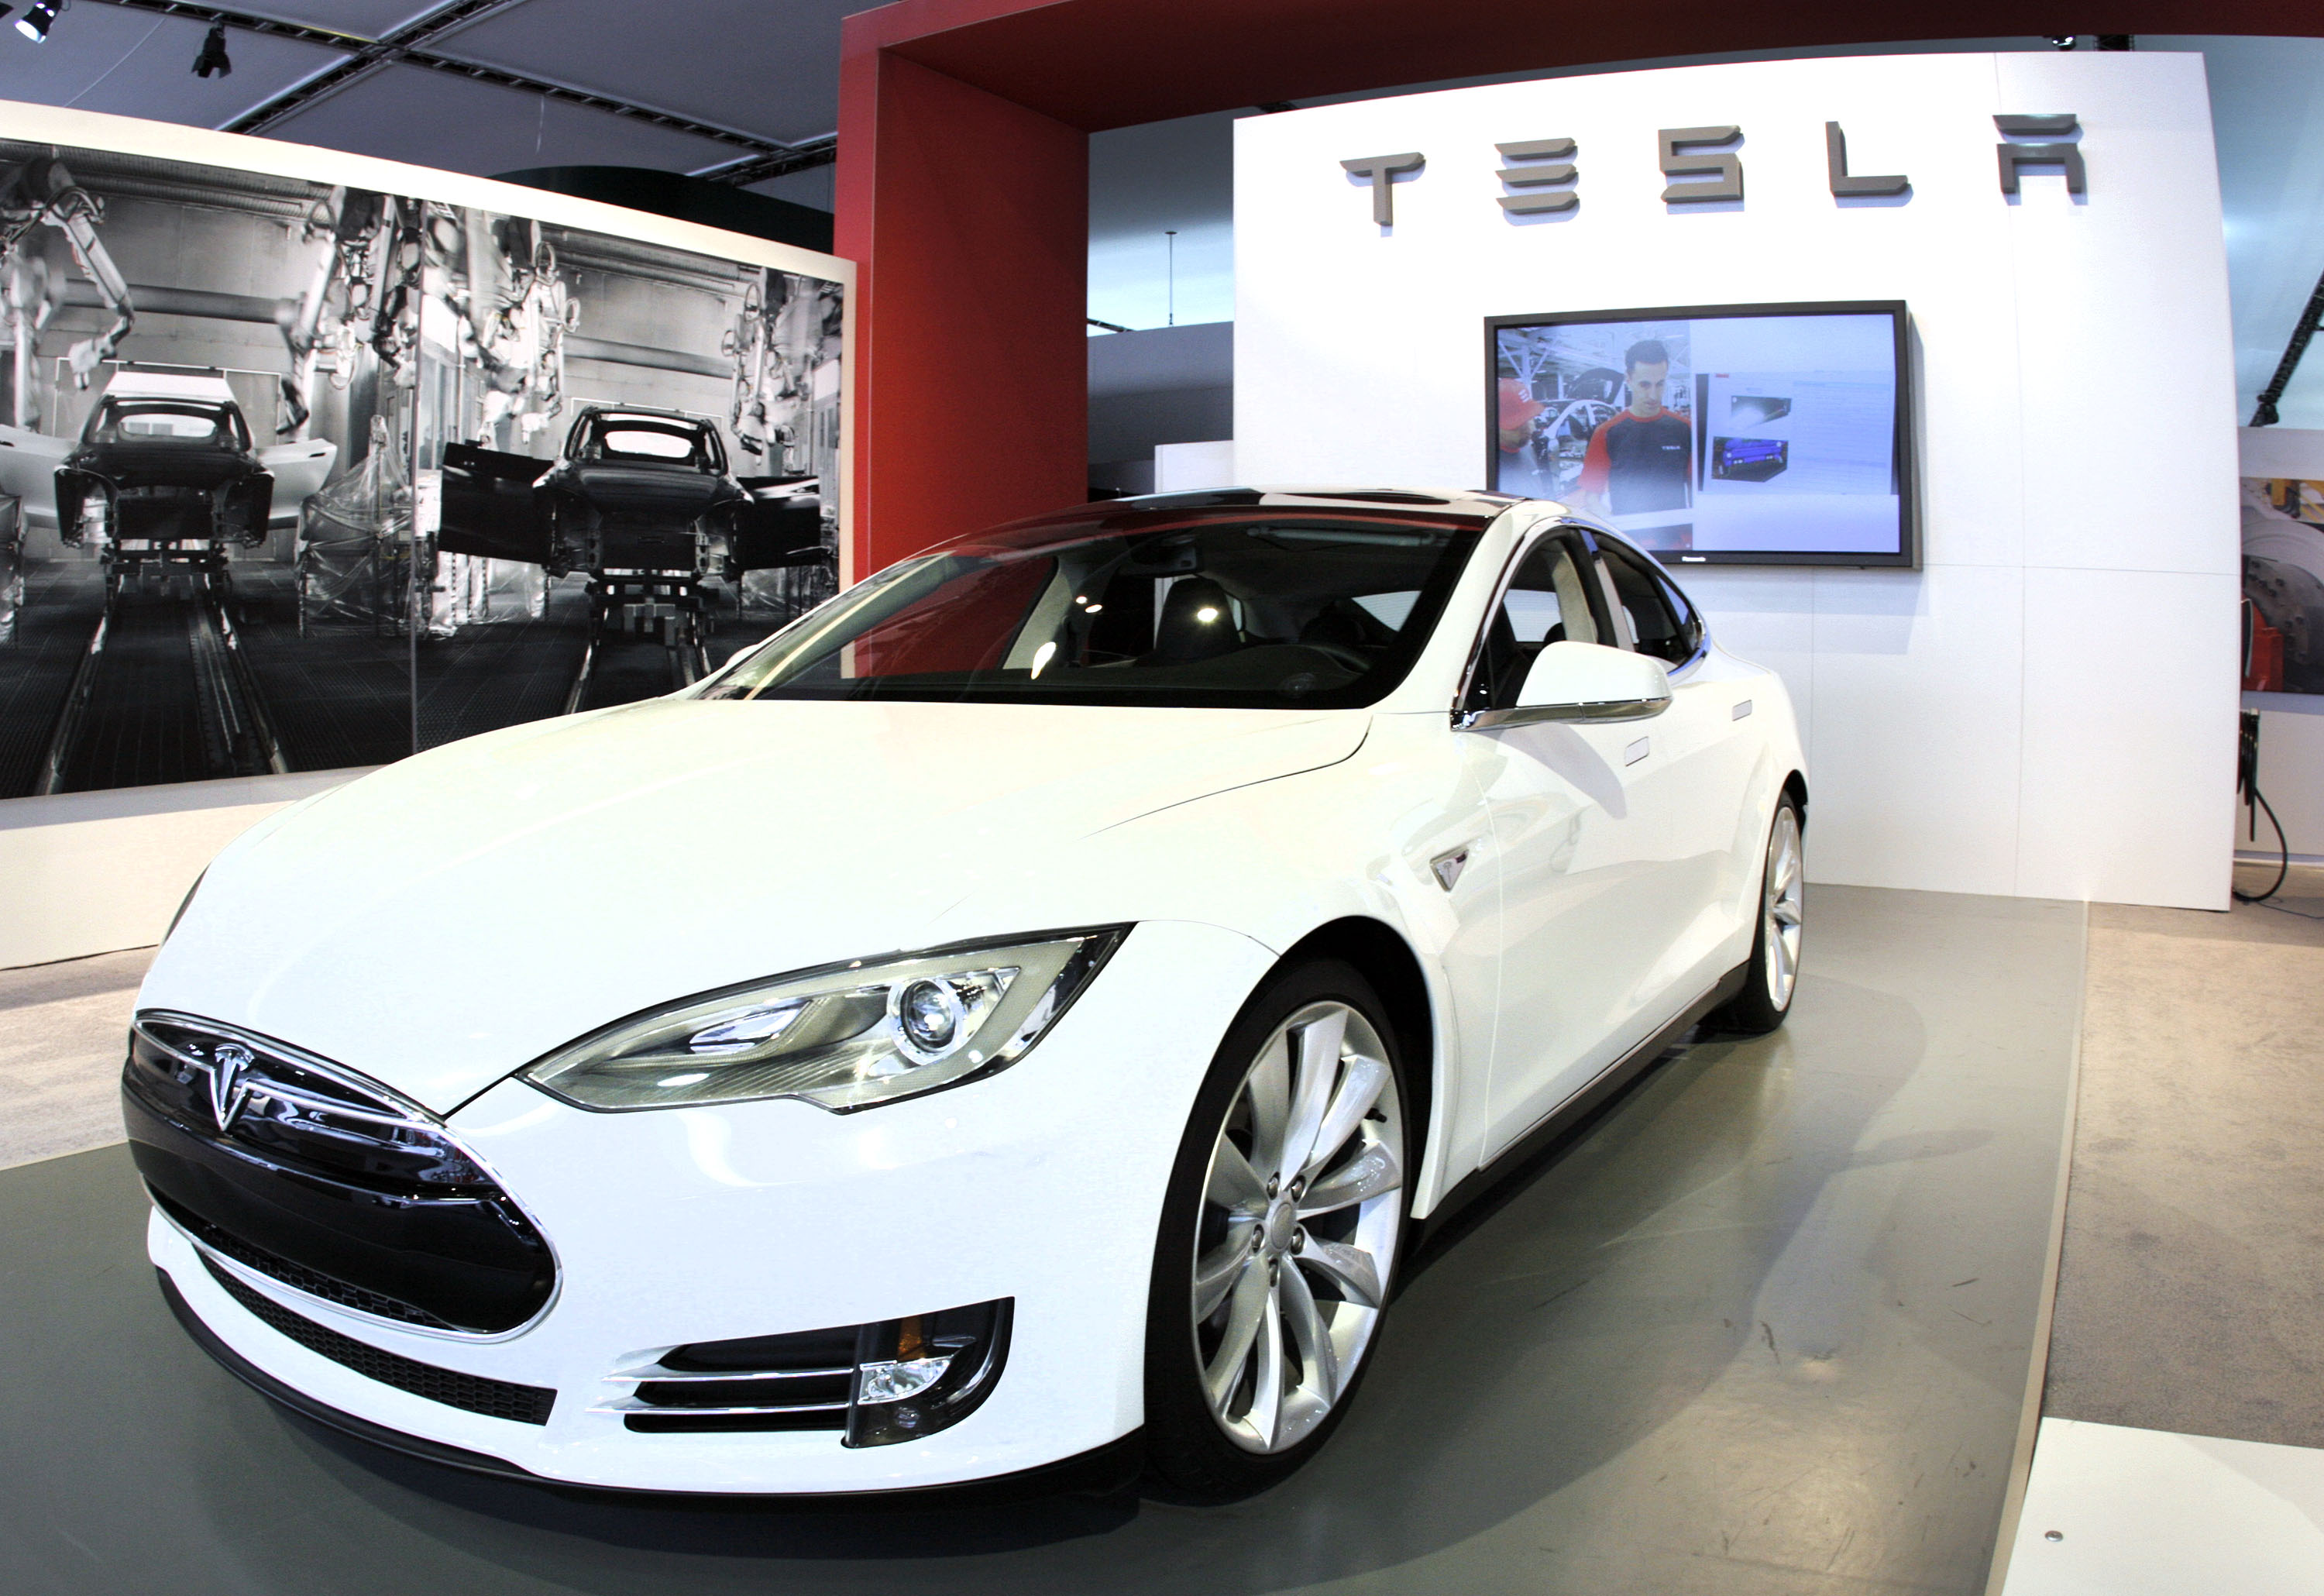 The Tesla Model S Signature is shown during a media preview day at the 2012 North American International Auto Show January 10, 2012 in Detroit, Michigan.